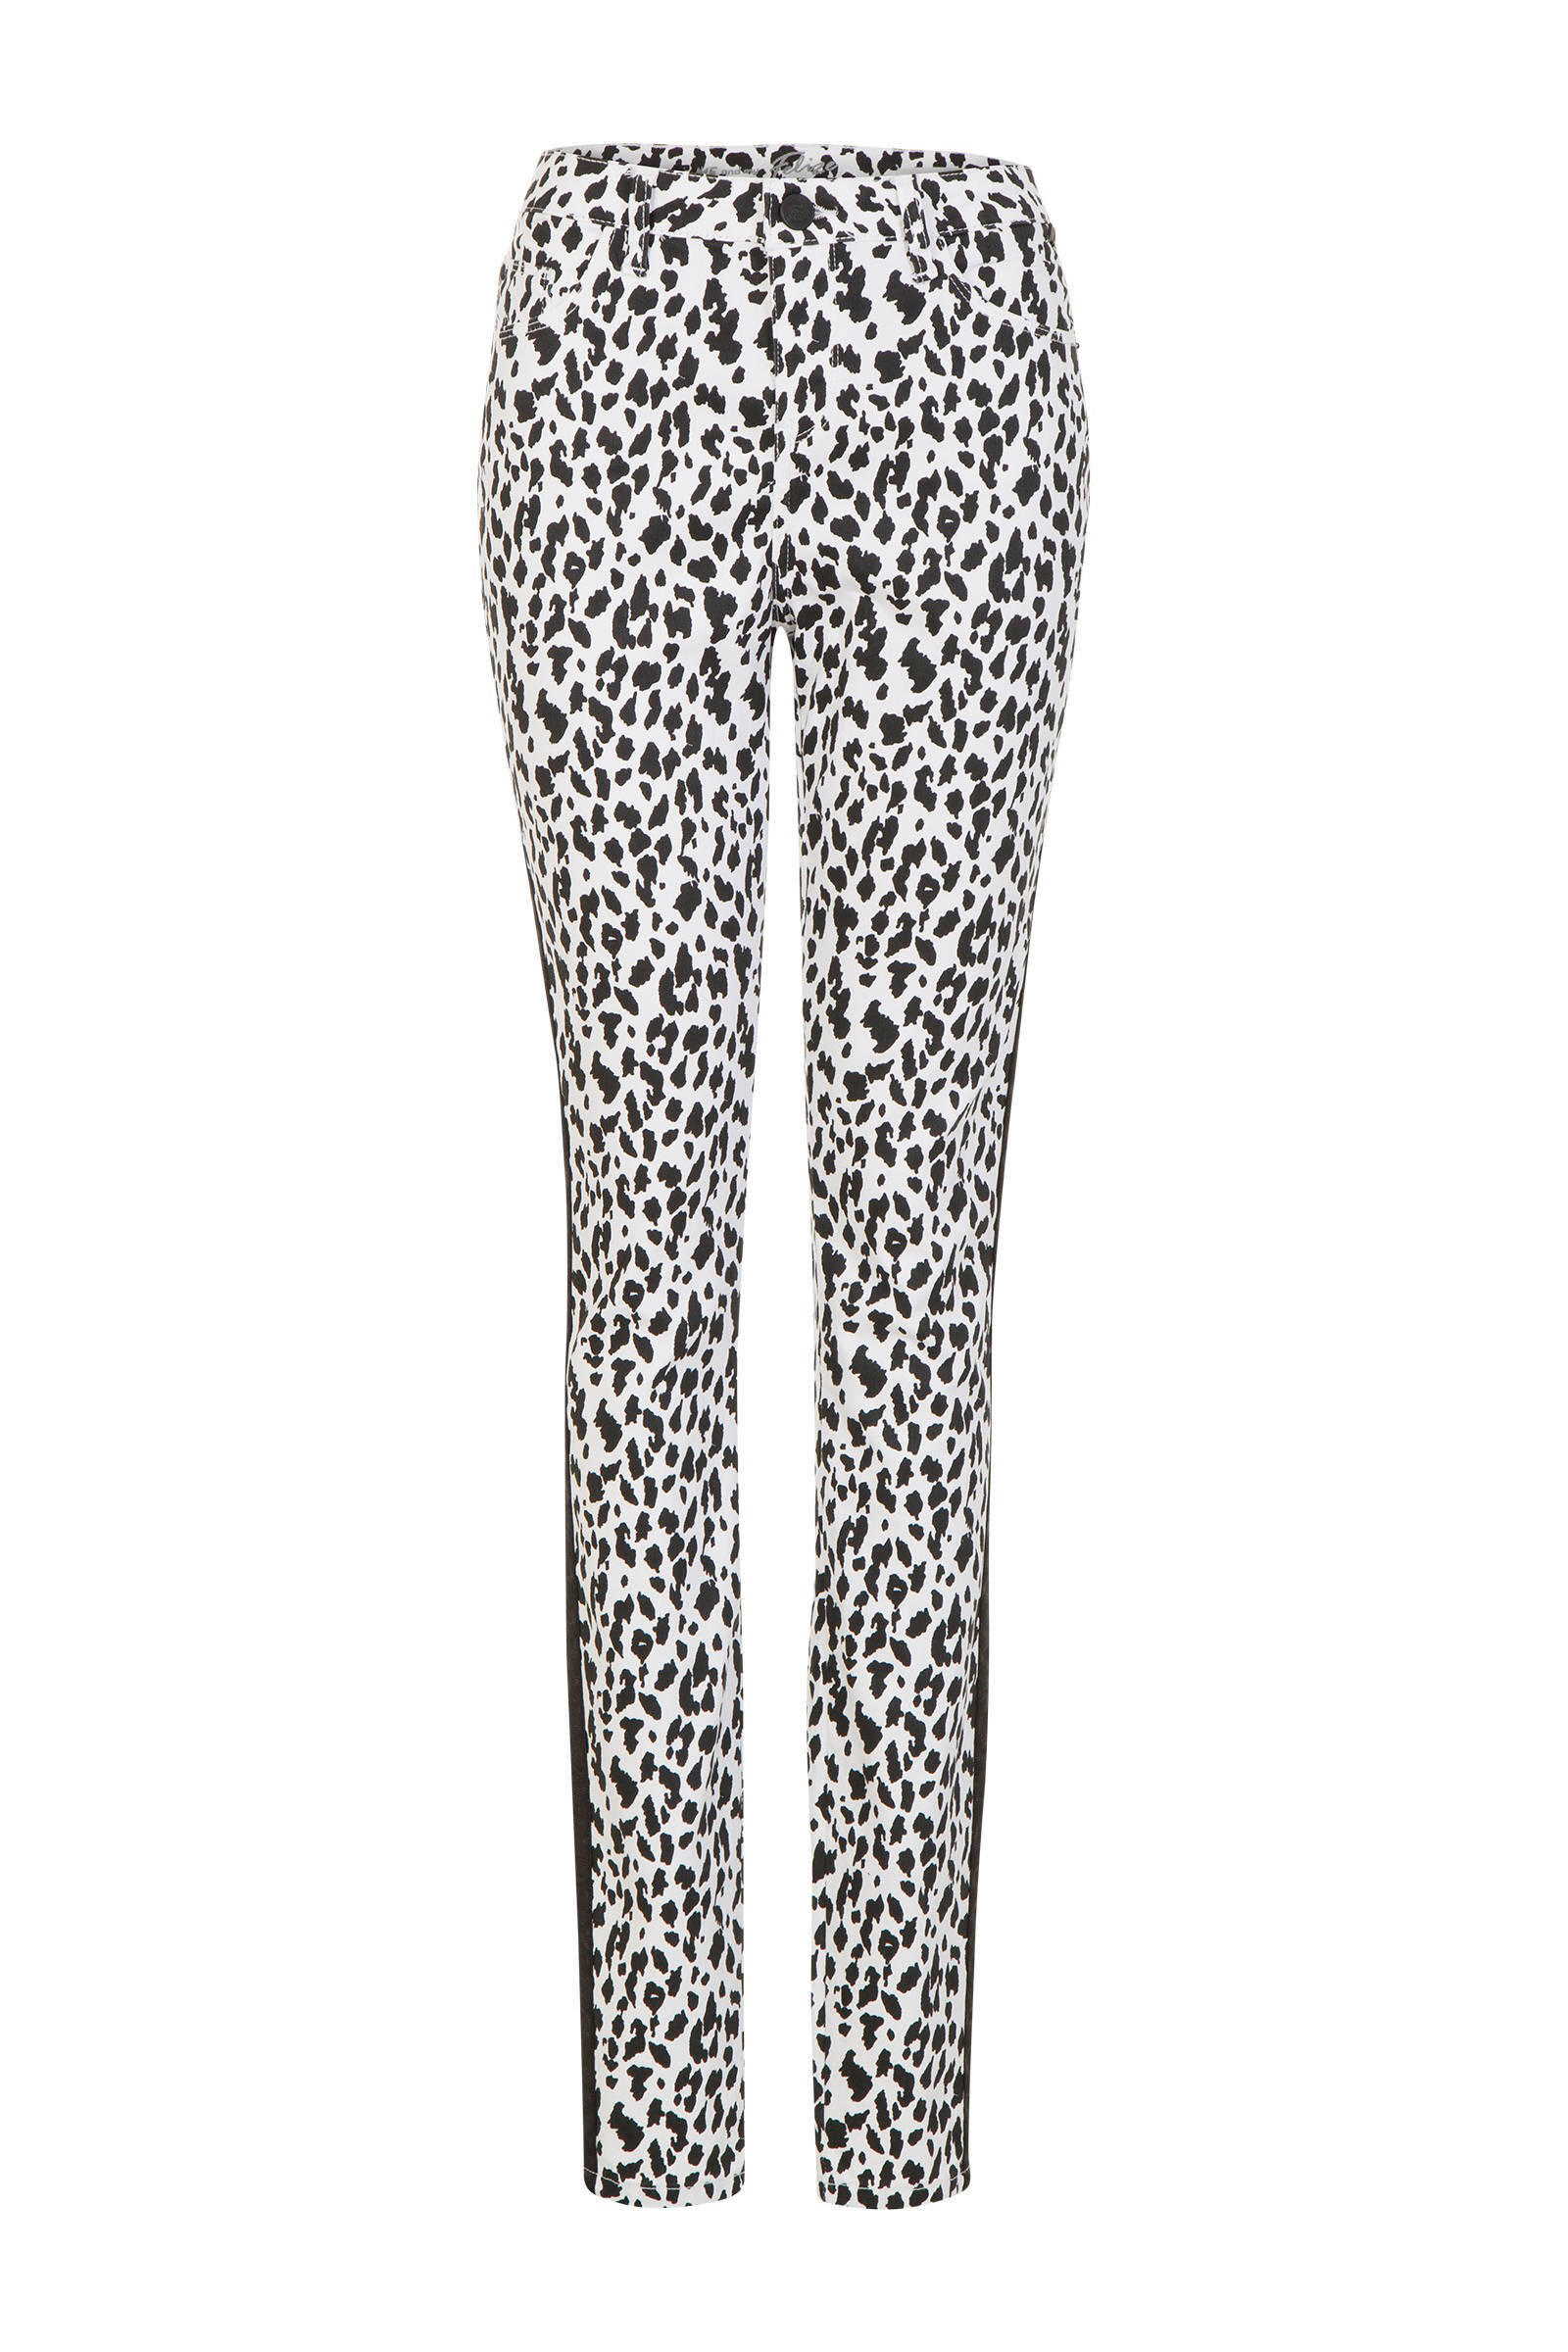 Miss Etam Lang slim fit broek met panter print en zijstreep